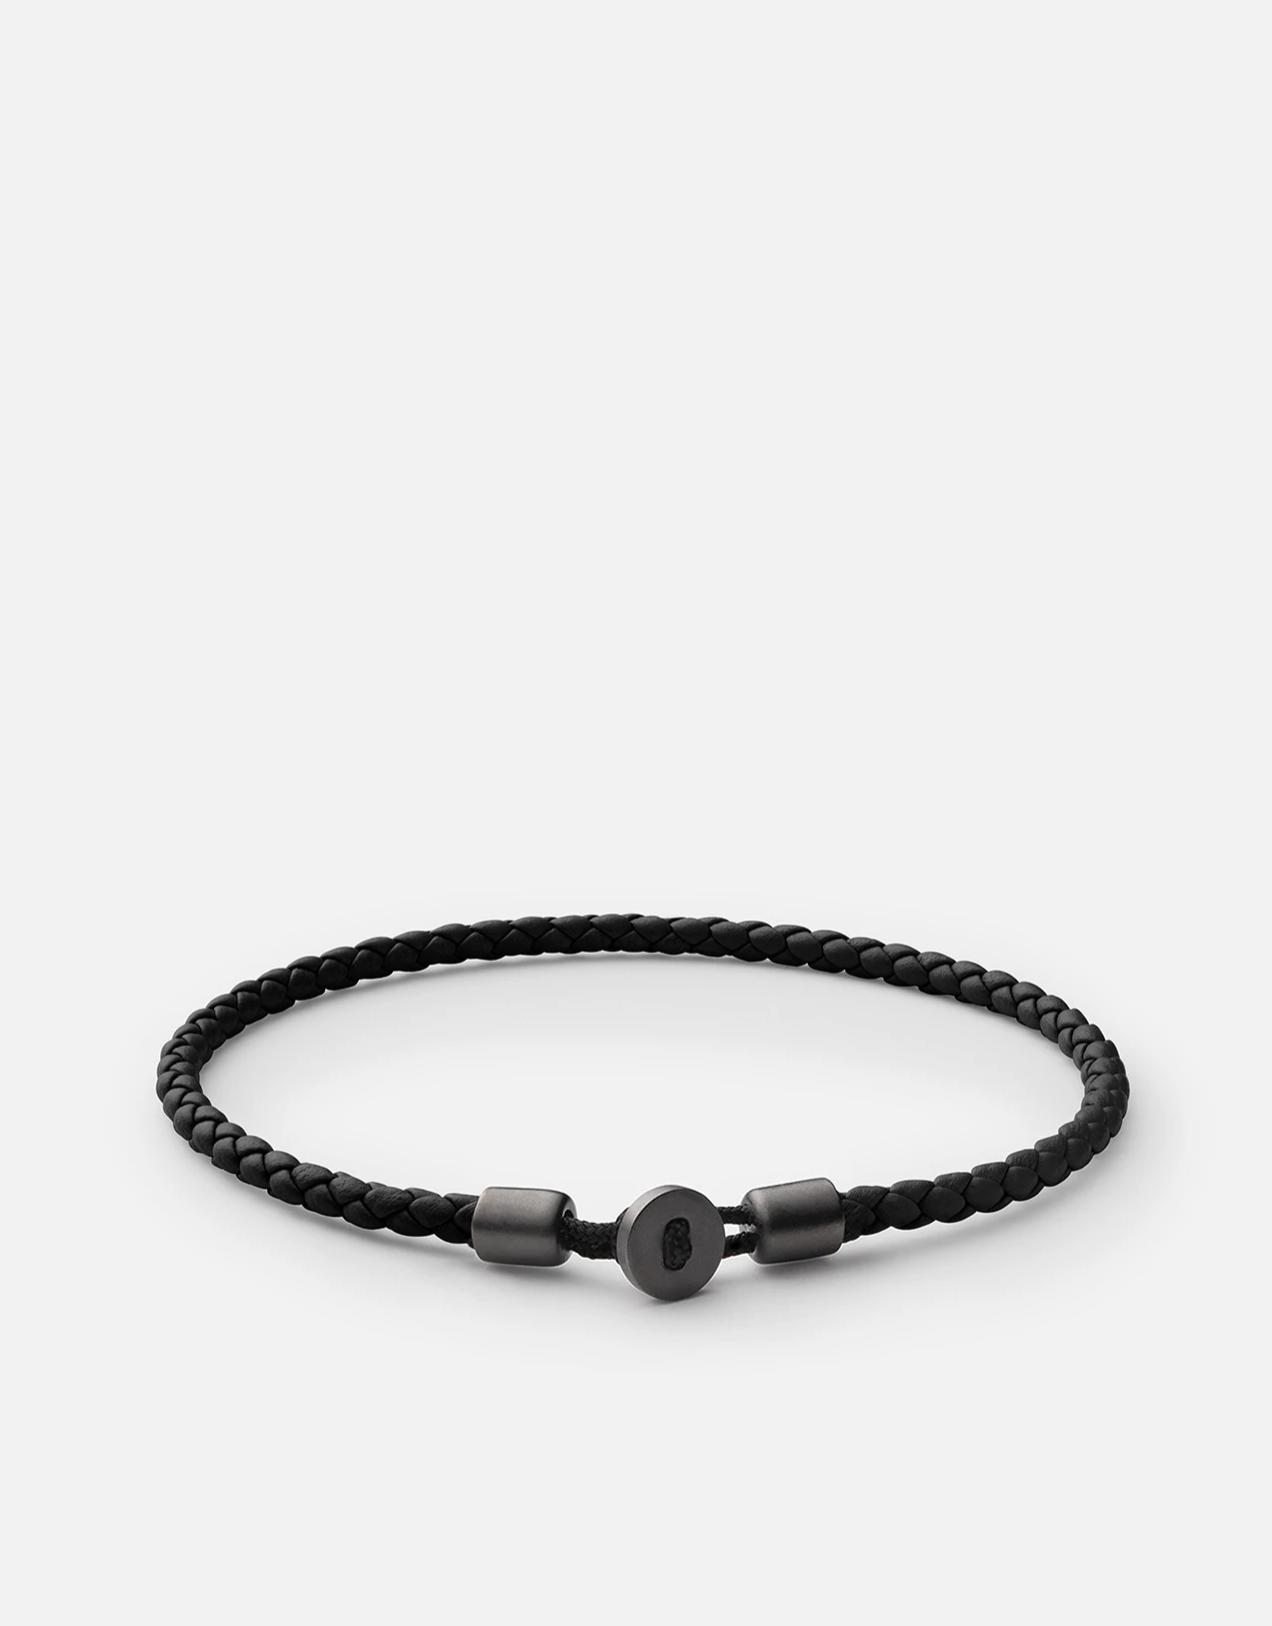 NEXUS LEATHER BRACELET